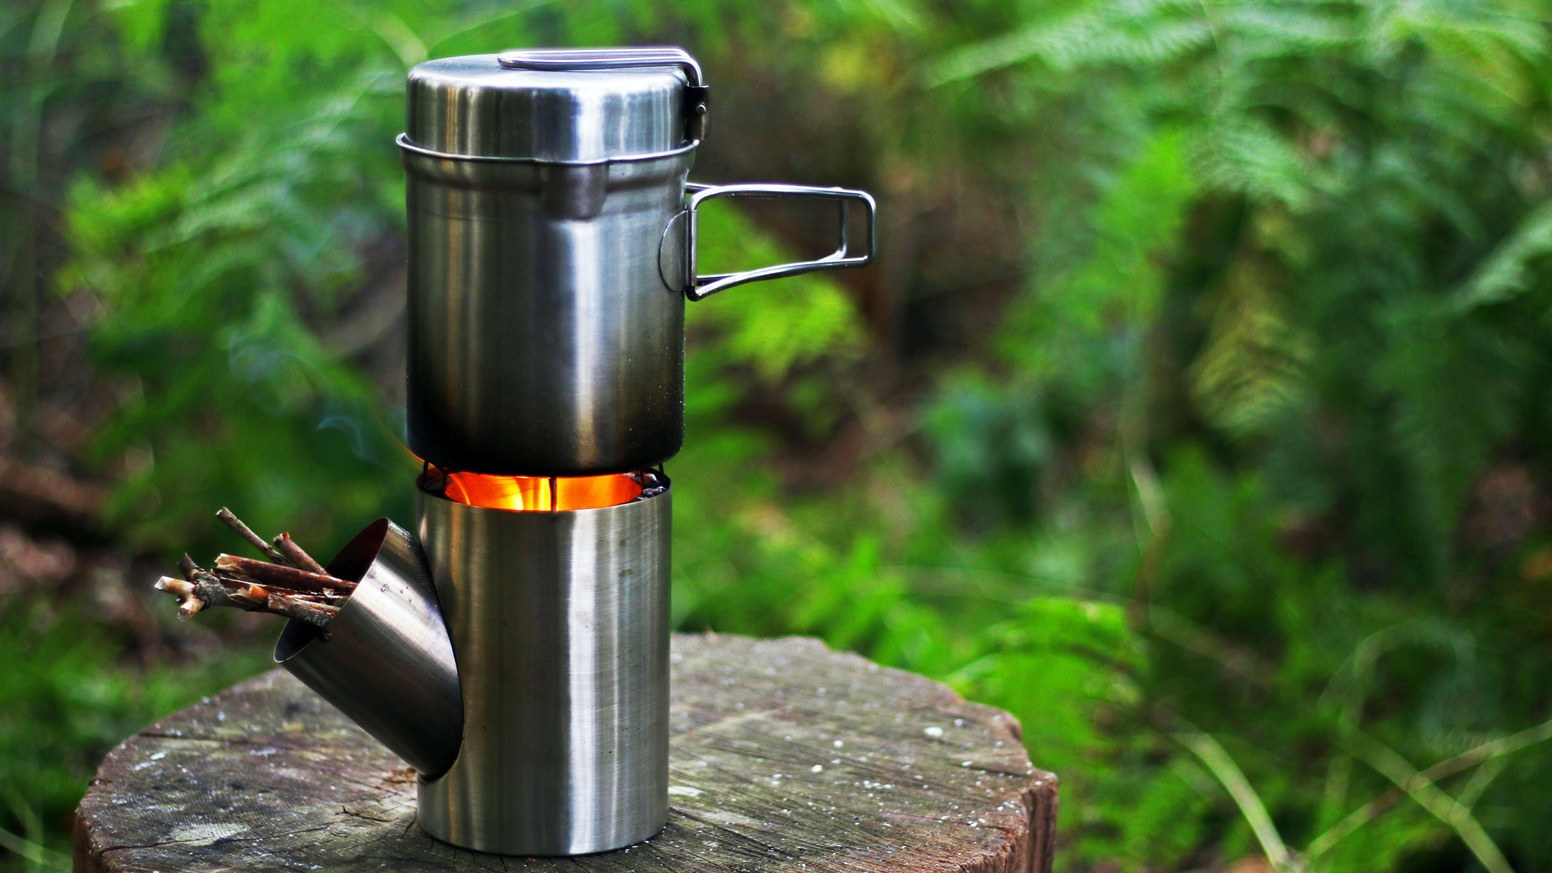 Kombuis A Portable And Efficient Rocket Stove Cooking Set By By